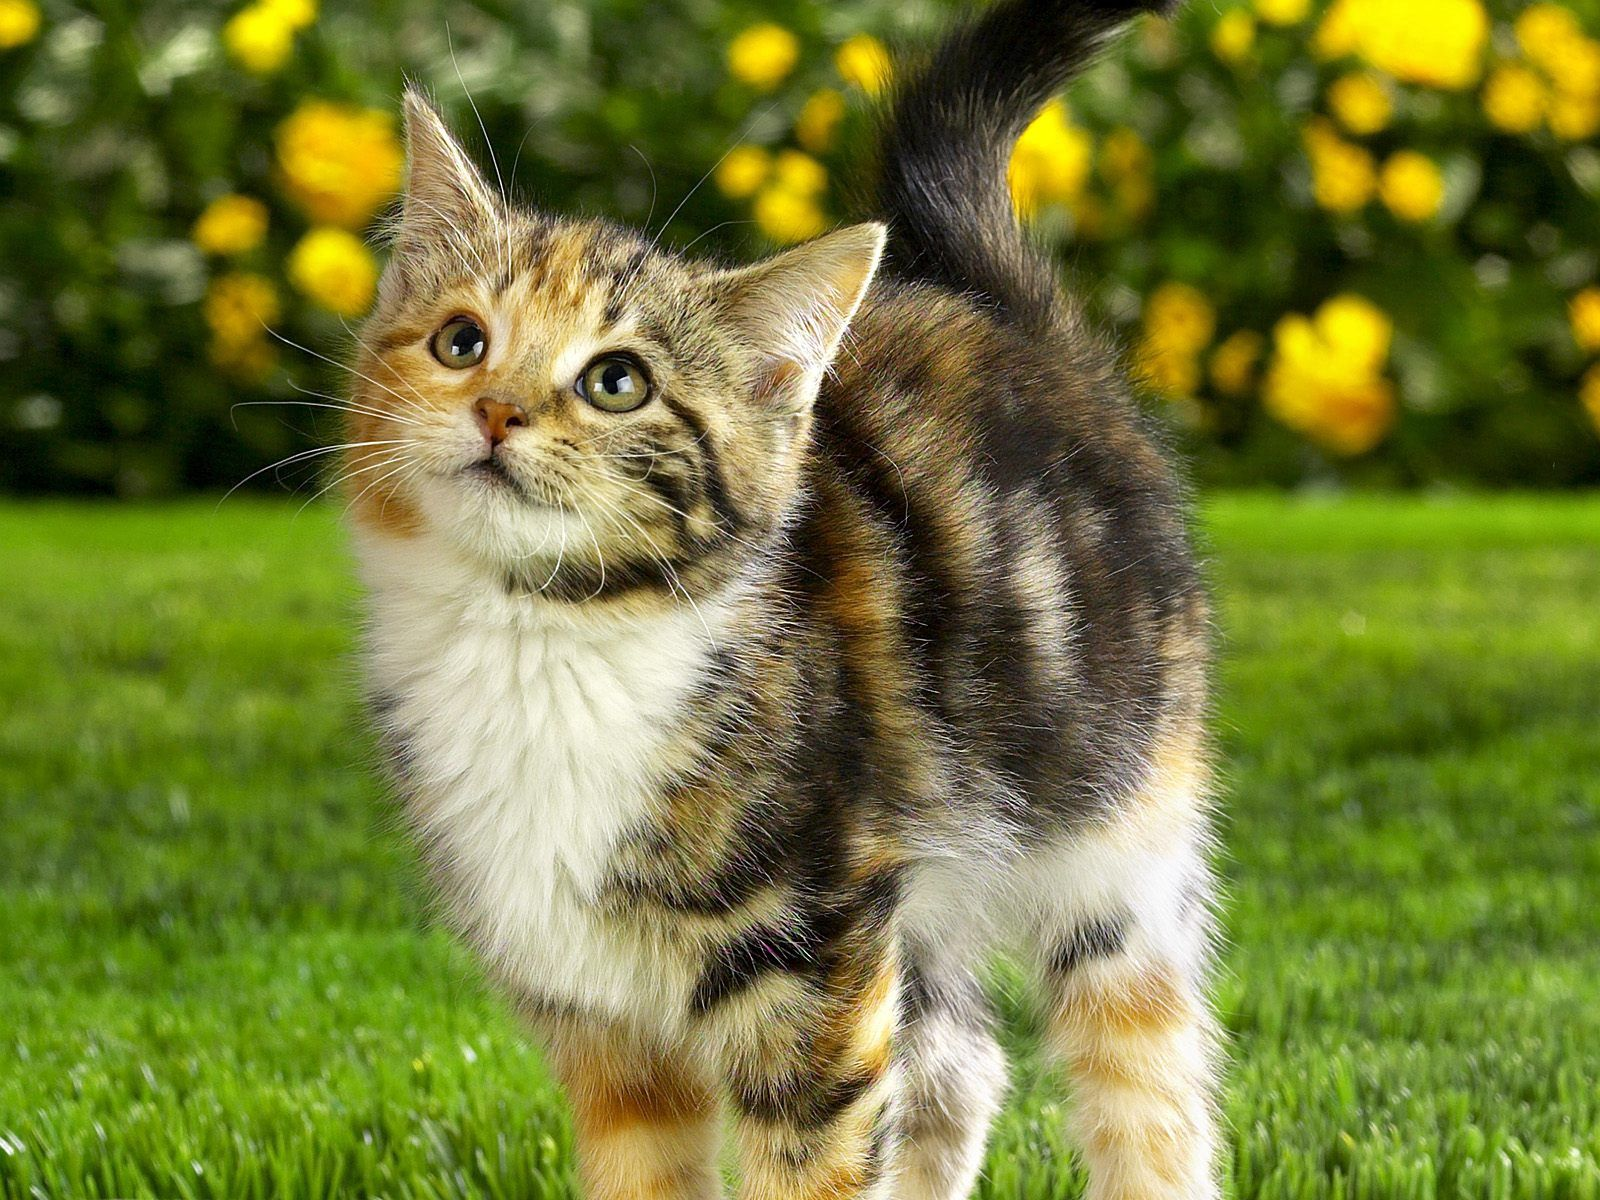 59613 download wallpaper Animals, Kitty, Kitten, Striped, Grass, Muzzle, Nice, Sweetheart screensavers and pictures for free